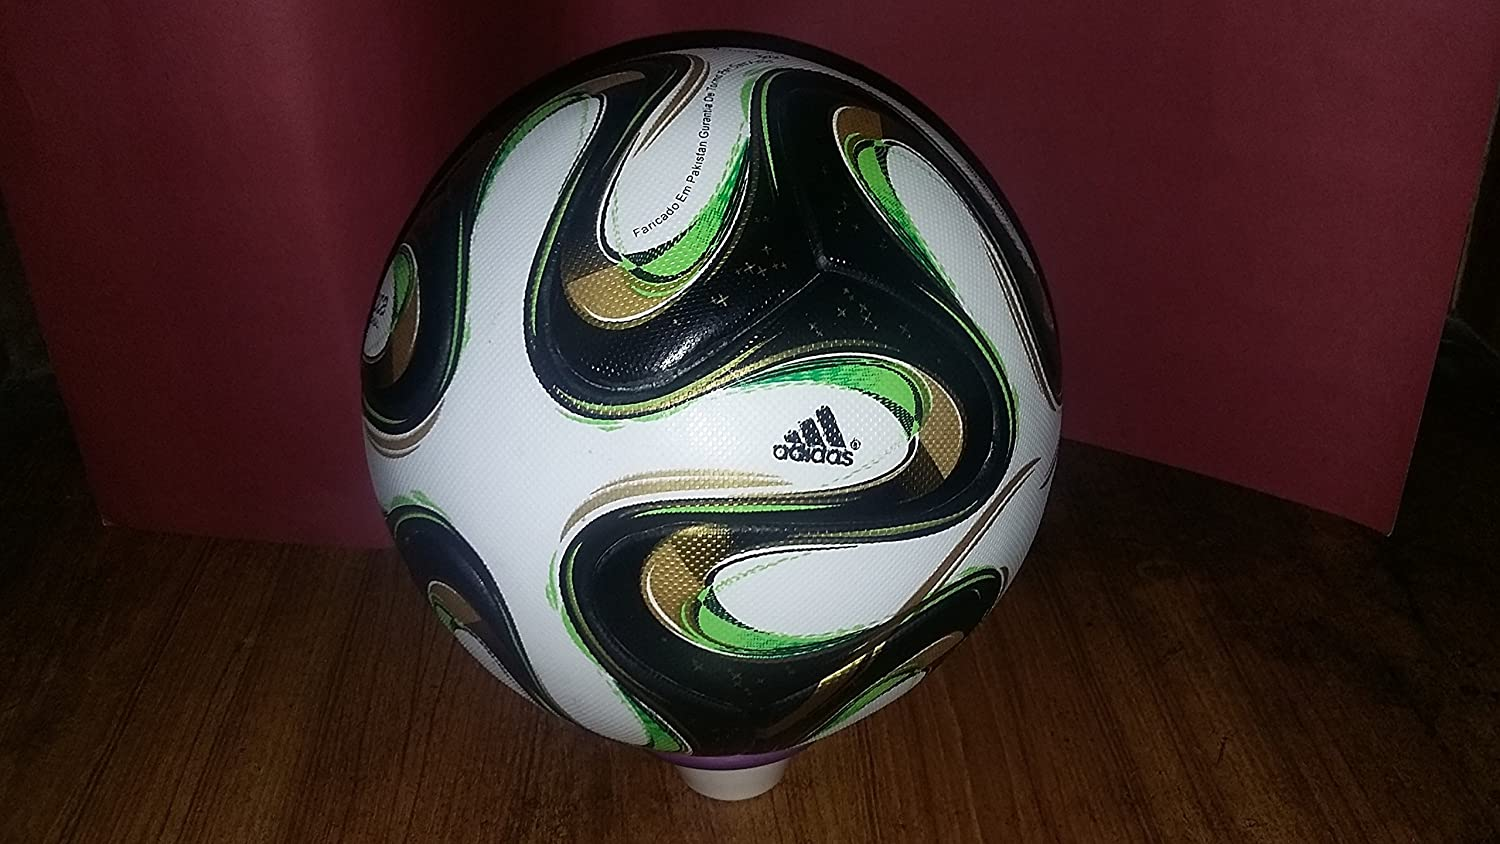 adidas 2014 FIFA World Cup Brazuca Final Rio Match Ball Replica Top Glider Size 5 ornamentation bathroom accessories bath hardware high quality full brass towel bar aliexpress delivery logistics guarantee